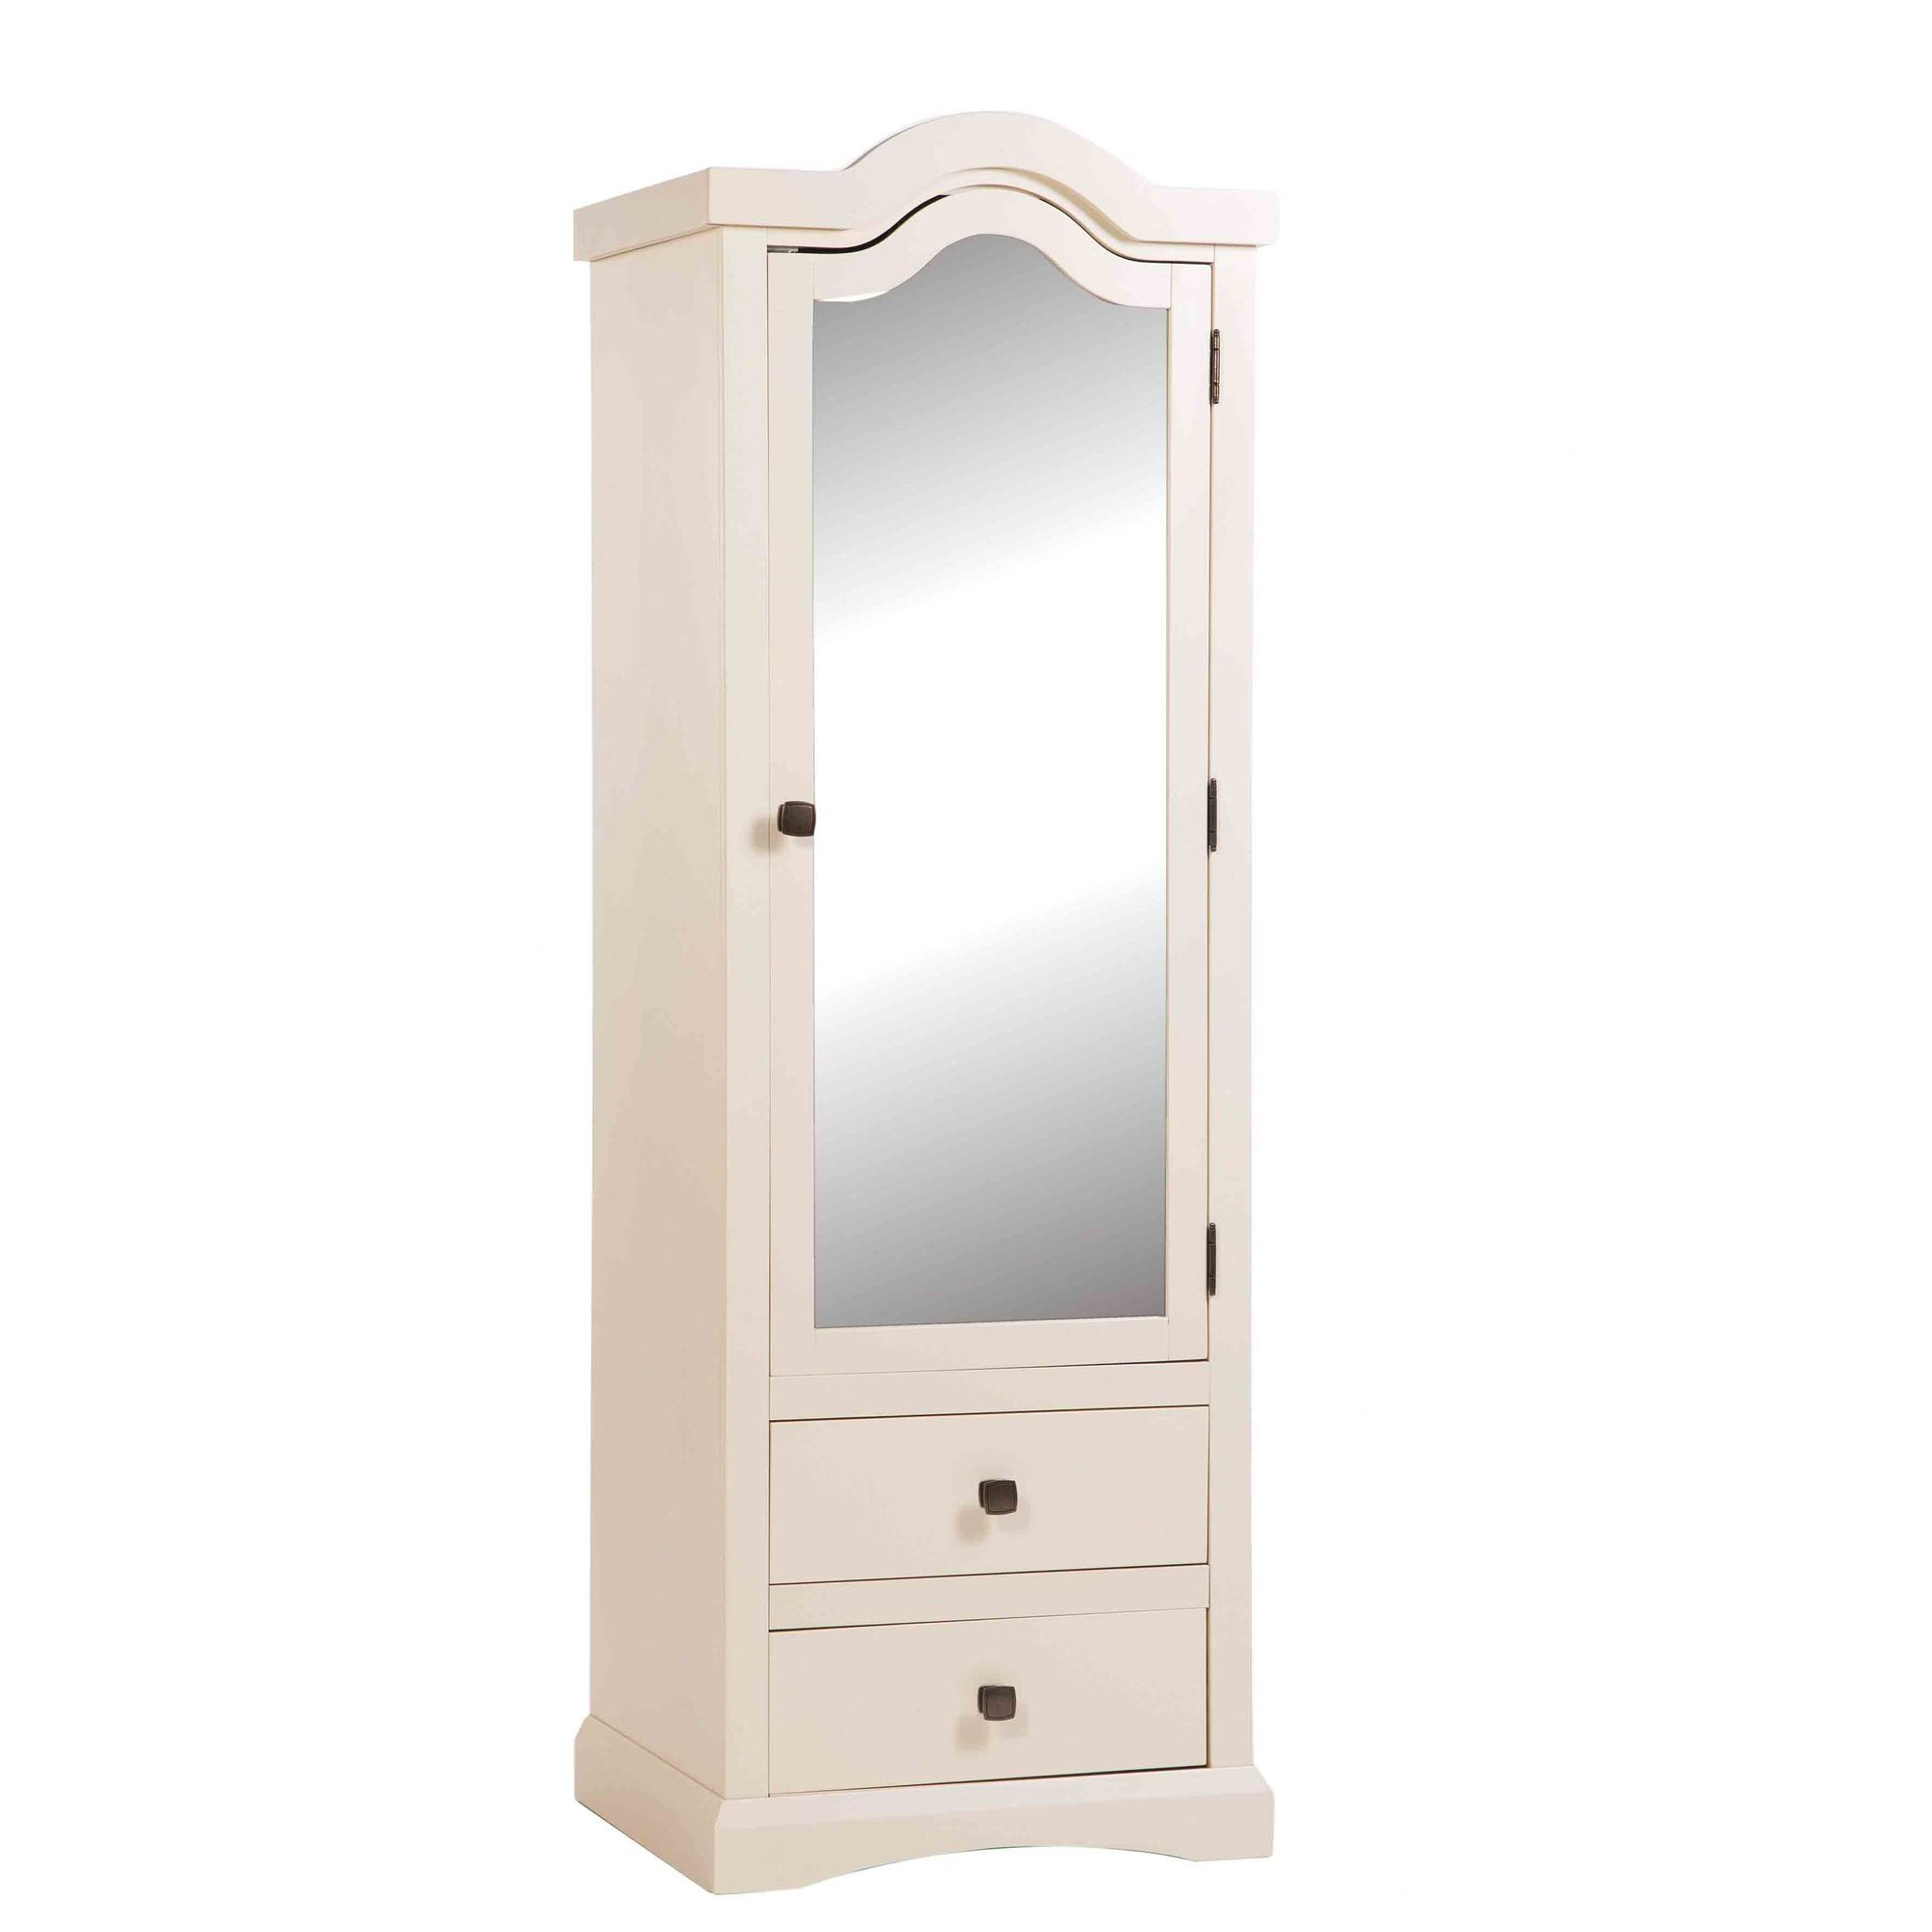 Home Essence Quebec 1 Mirrored Door with 2 Drawer Wardrobe at Tesco Direct